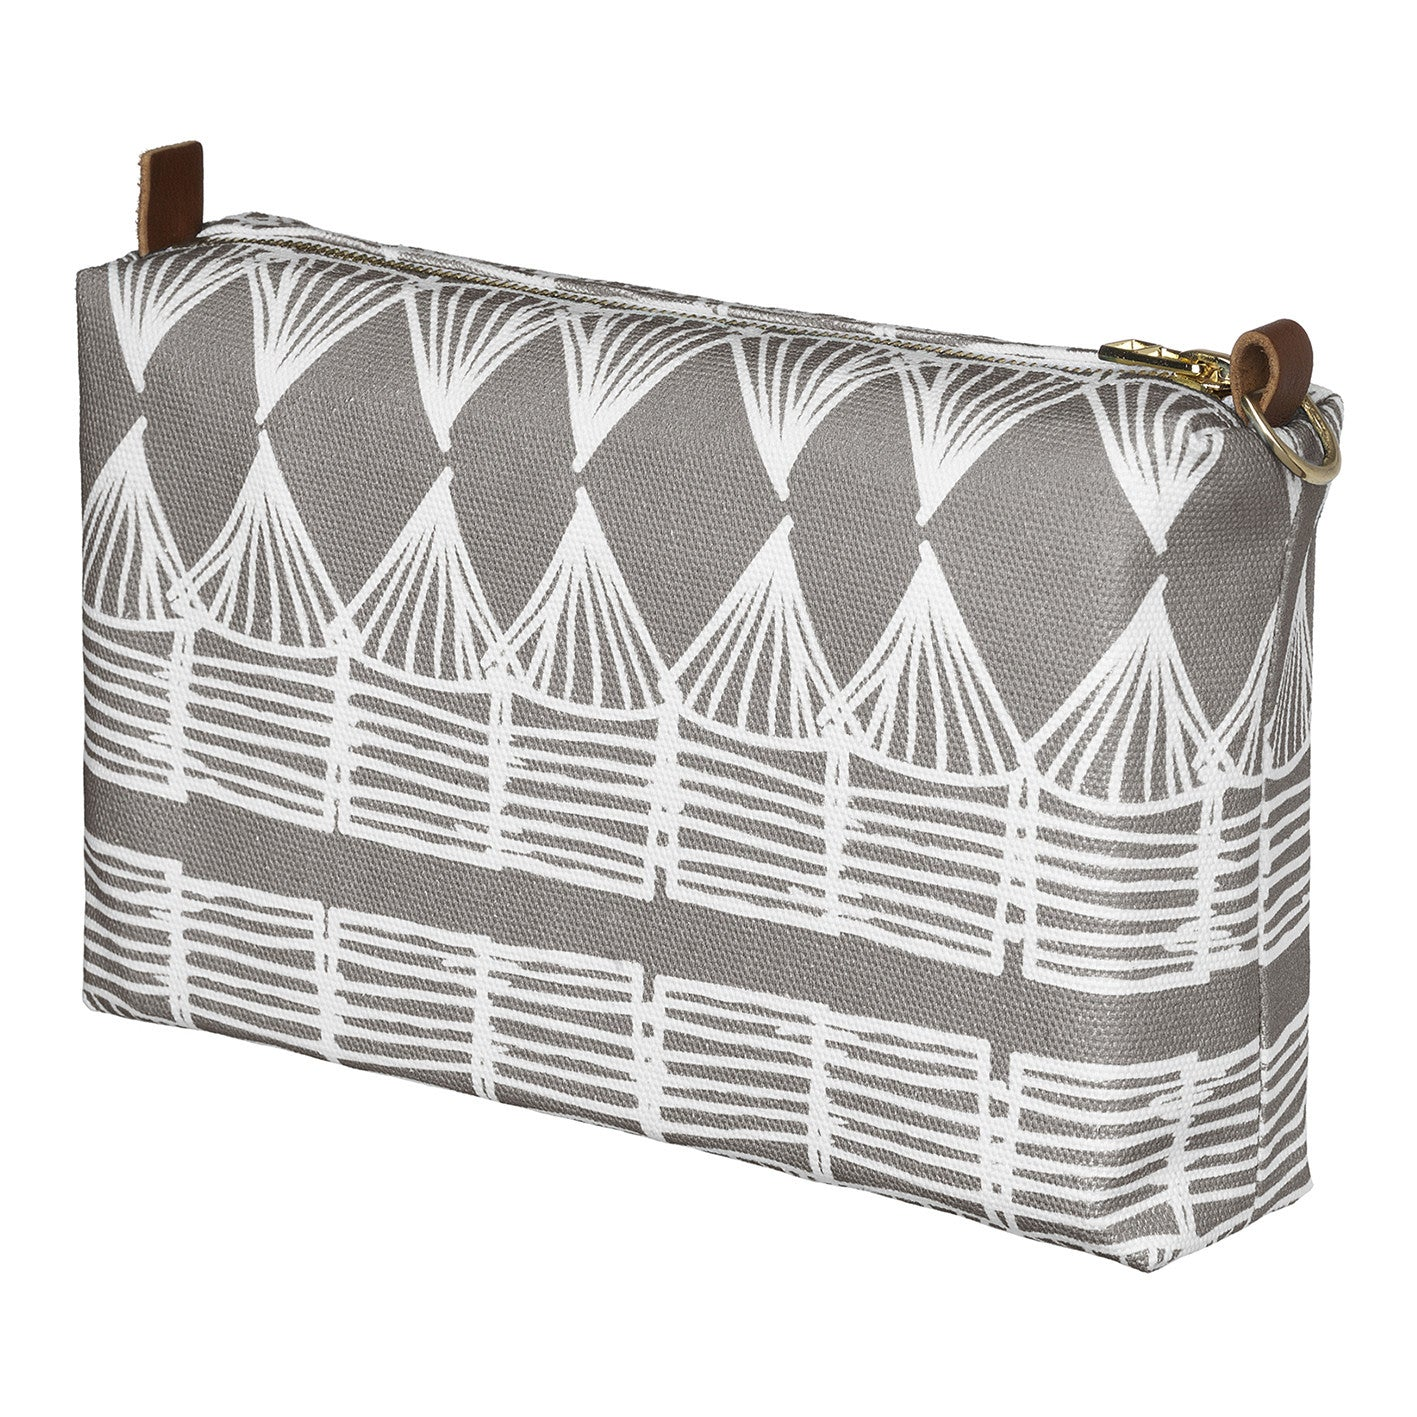 Tiki Huts Pattern Printed Canvas Toiletry Bag in Light Dove Gray